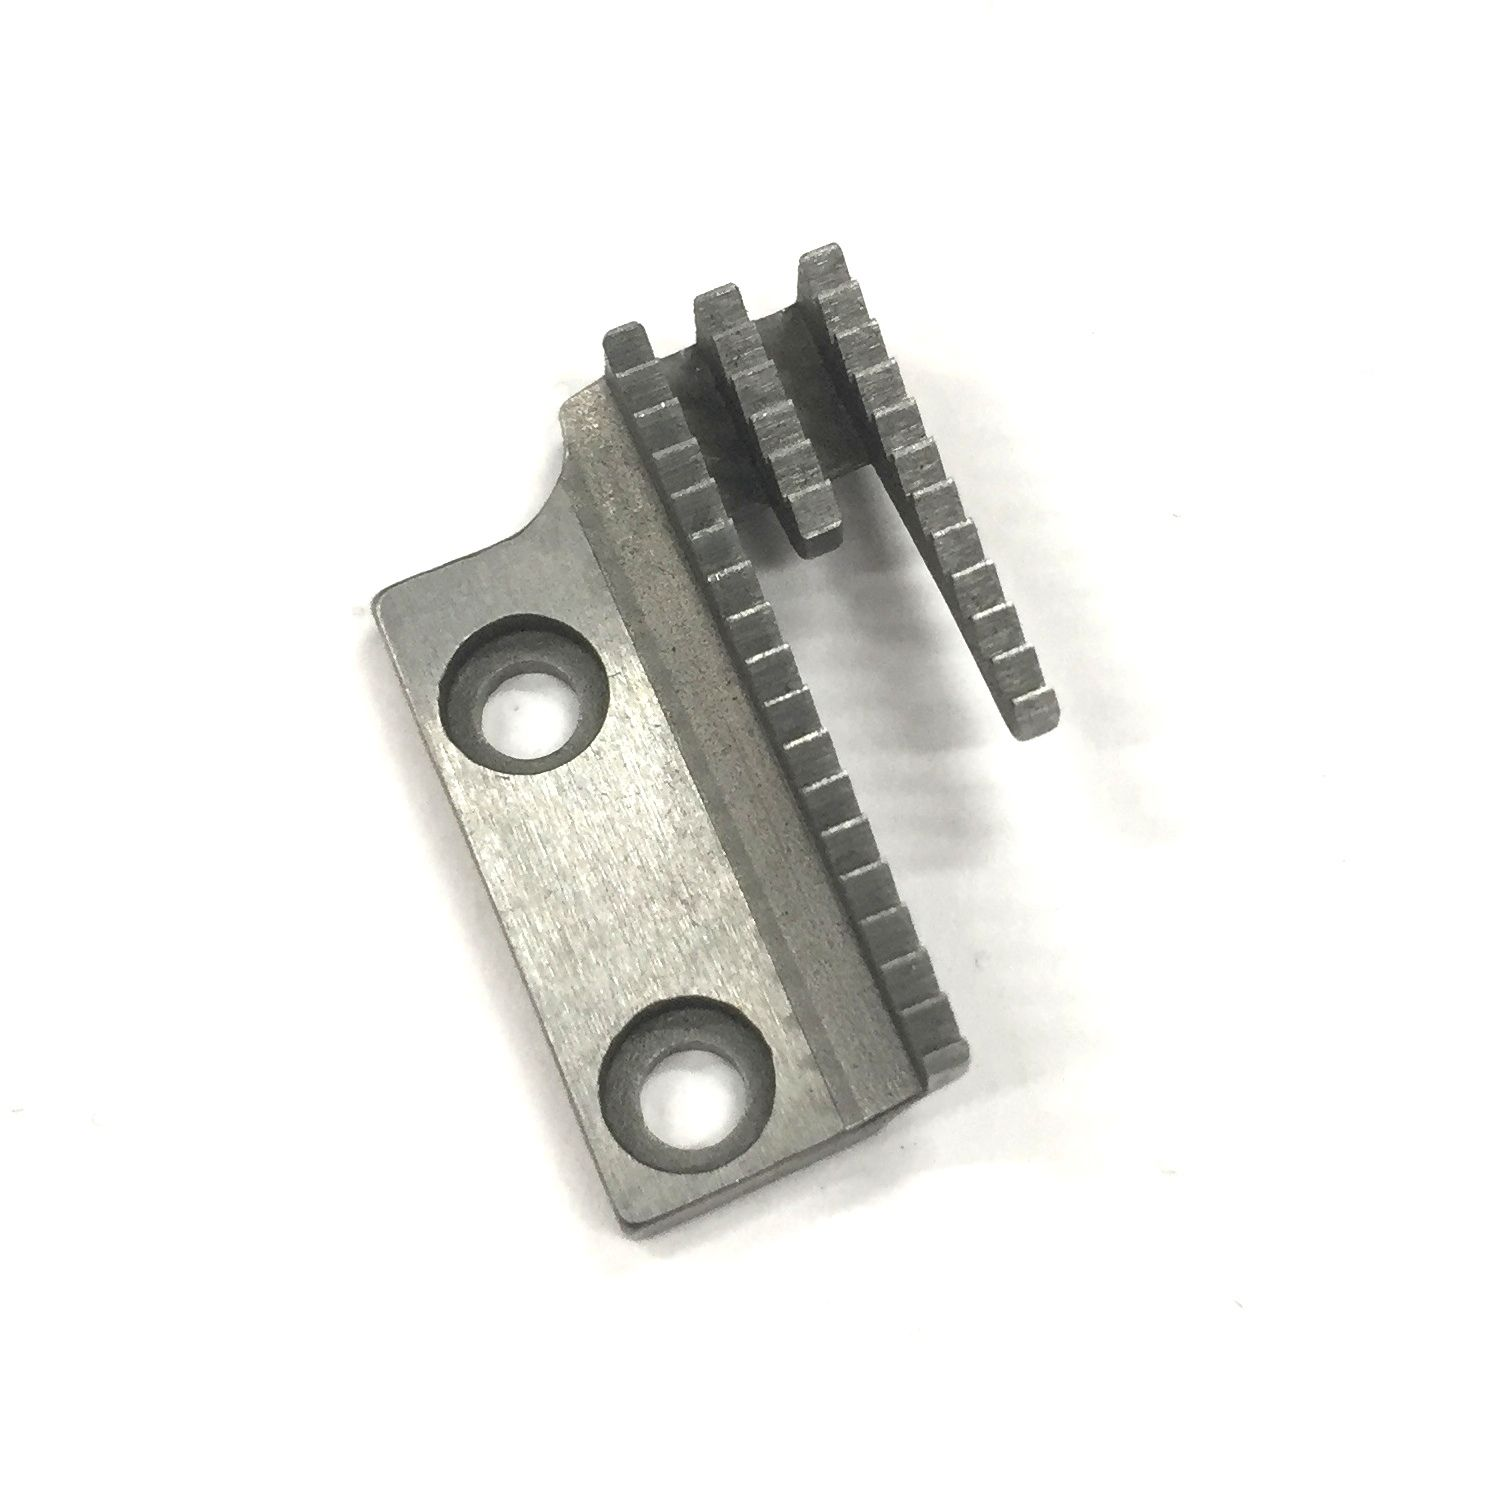 Needle Plate Feed Dog S13101+S45903  For Brother S7220 Heavy Weight Material